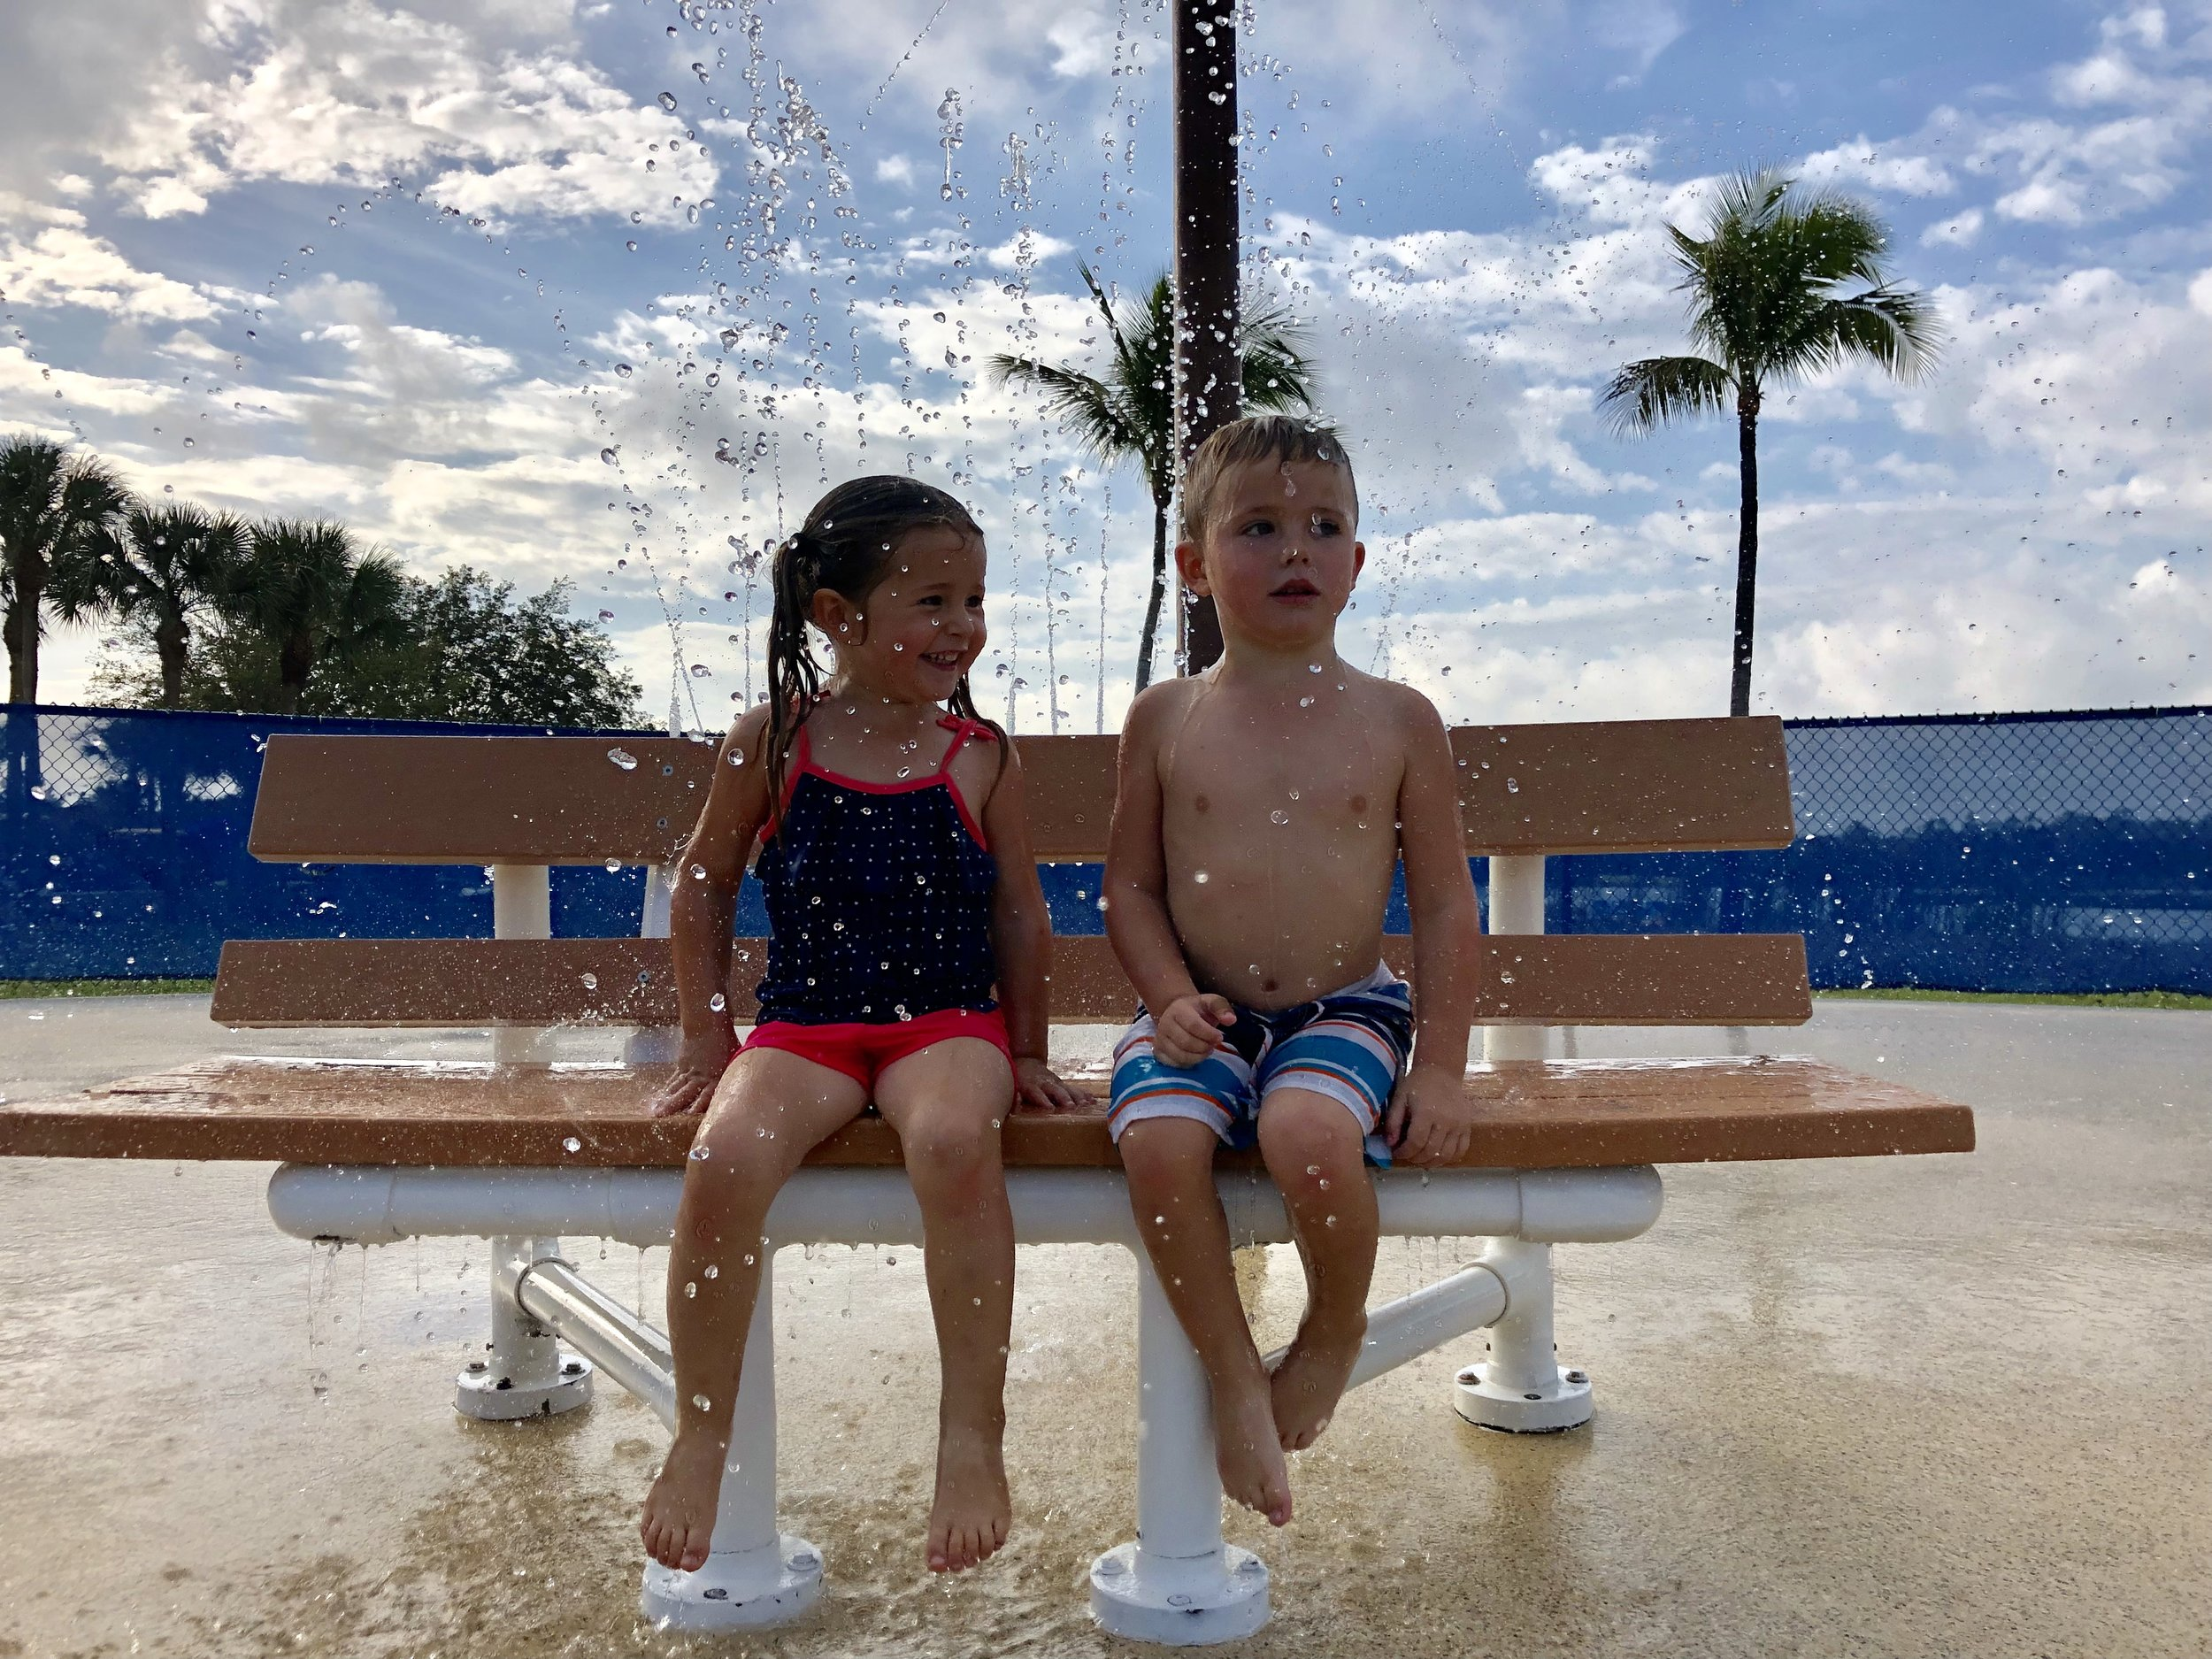 Who doesn't love a splash pad adventure on a hot day?